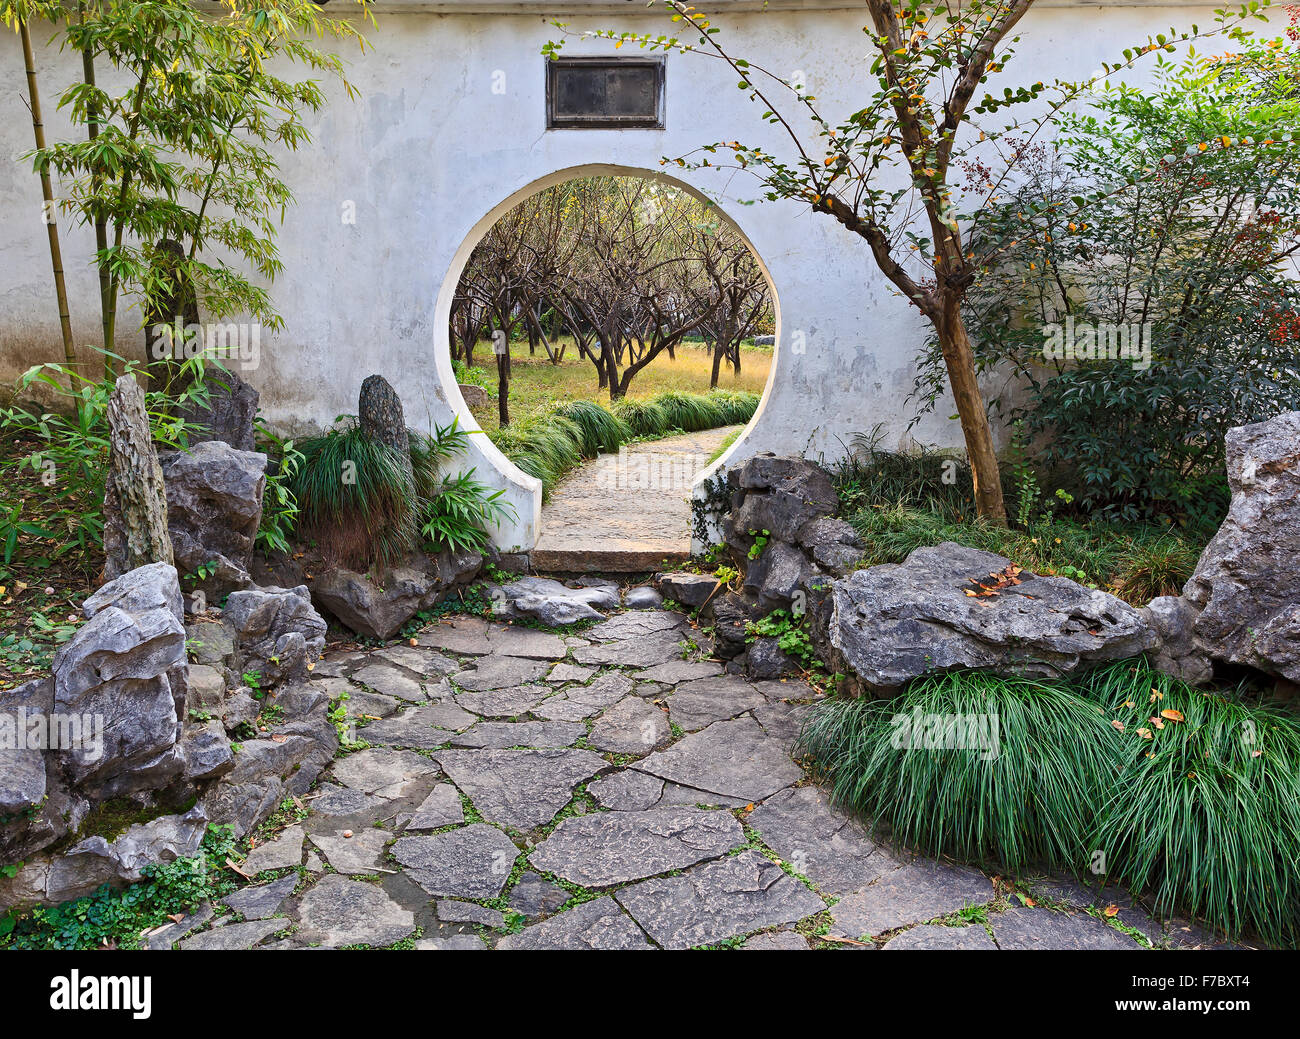 Chinese Formal Traditional Garden White Wall With Round Gate Hole From  Bamboo And Decorative Stones To